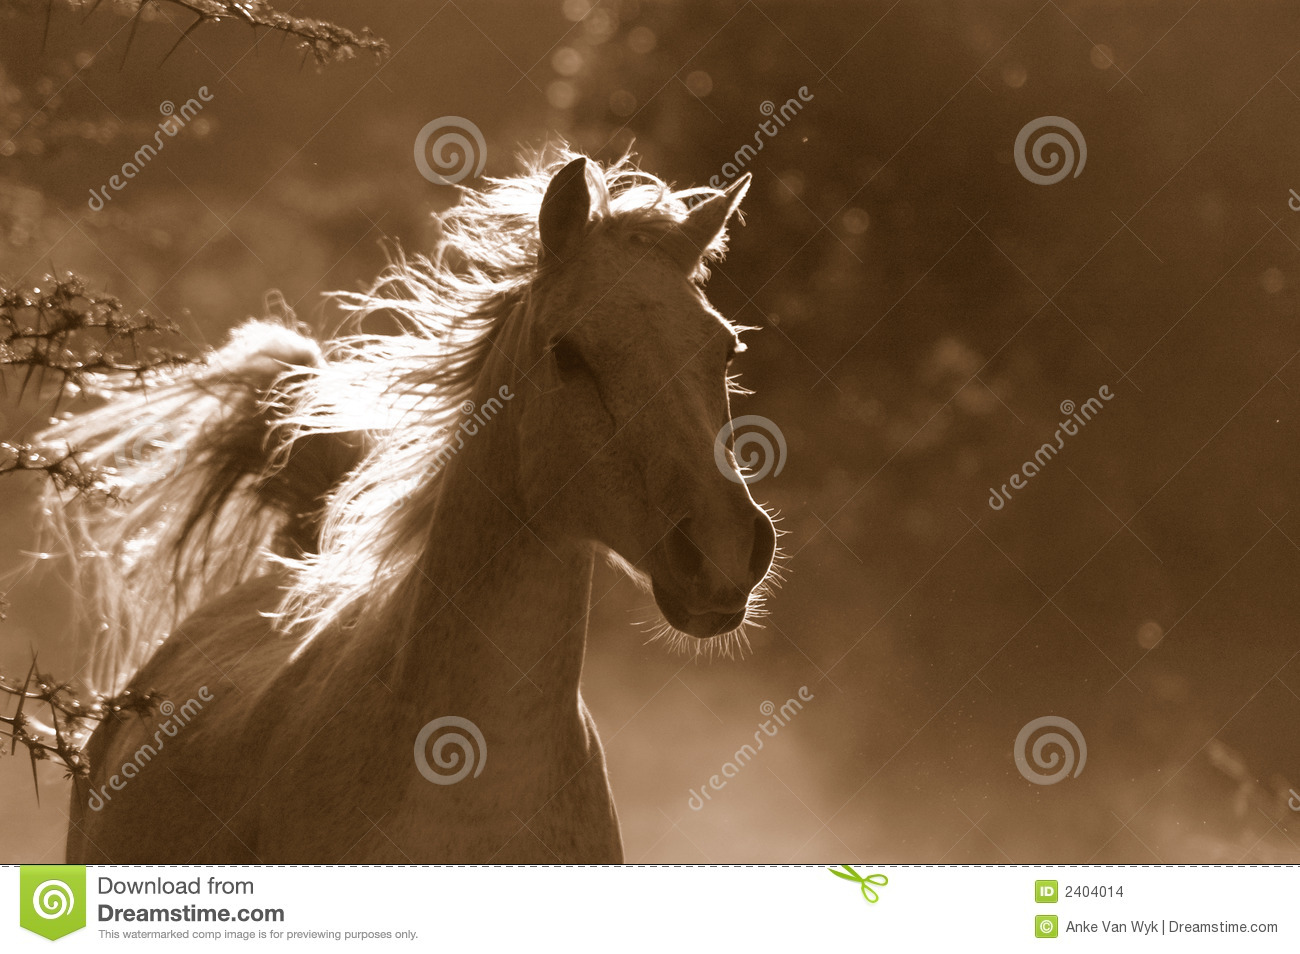 986 Stallion Arabian White Horse Running Wild Photos Free Royalty Free Stock Photos From Dreamstime